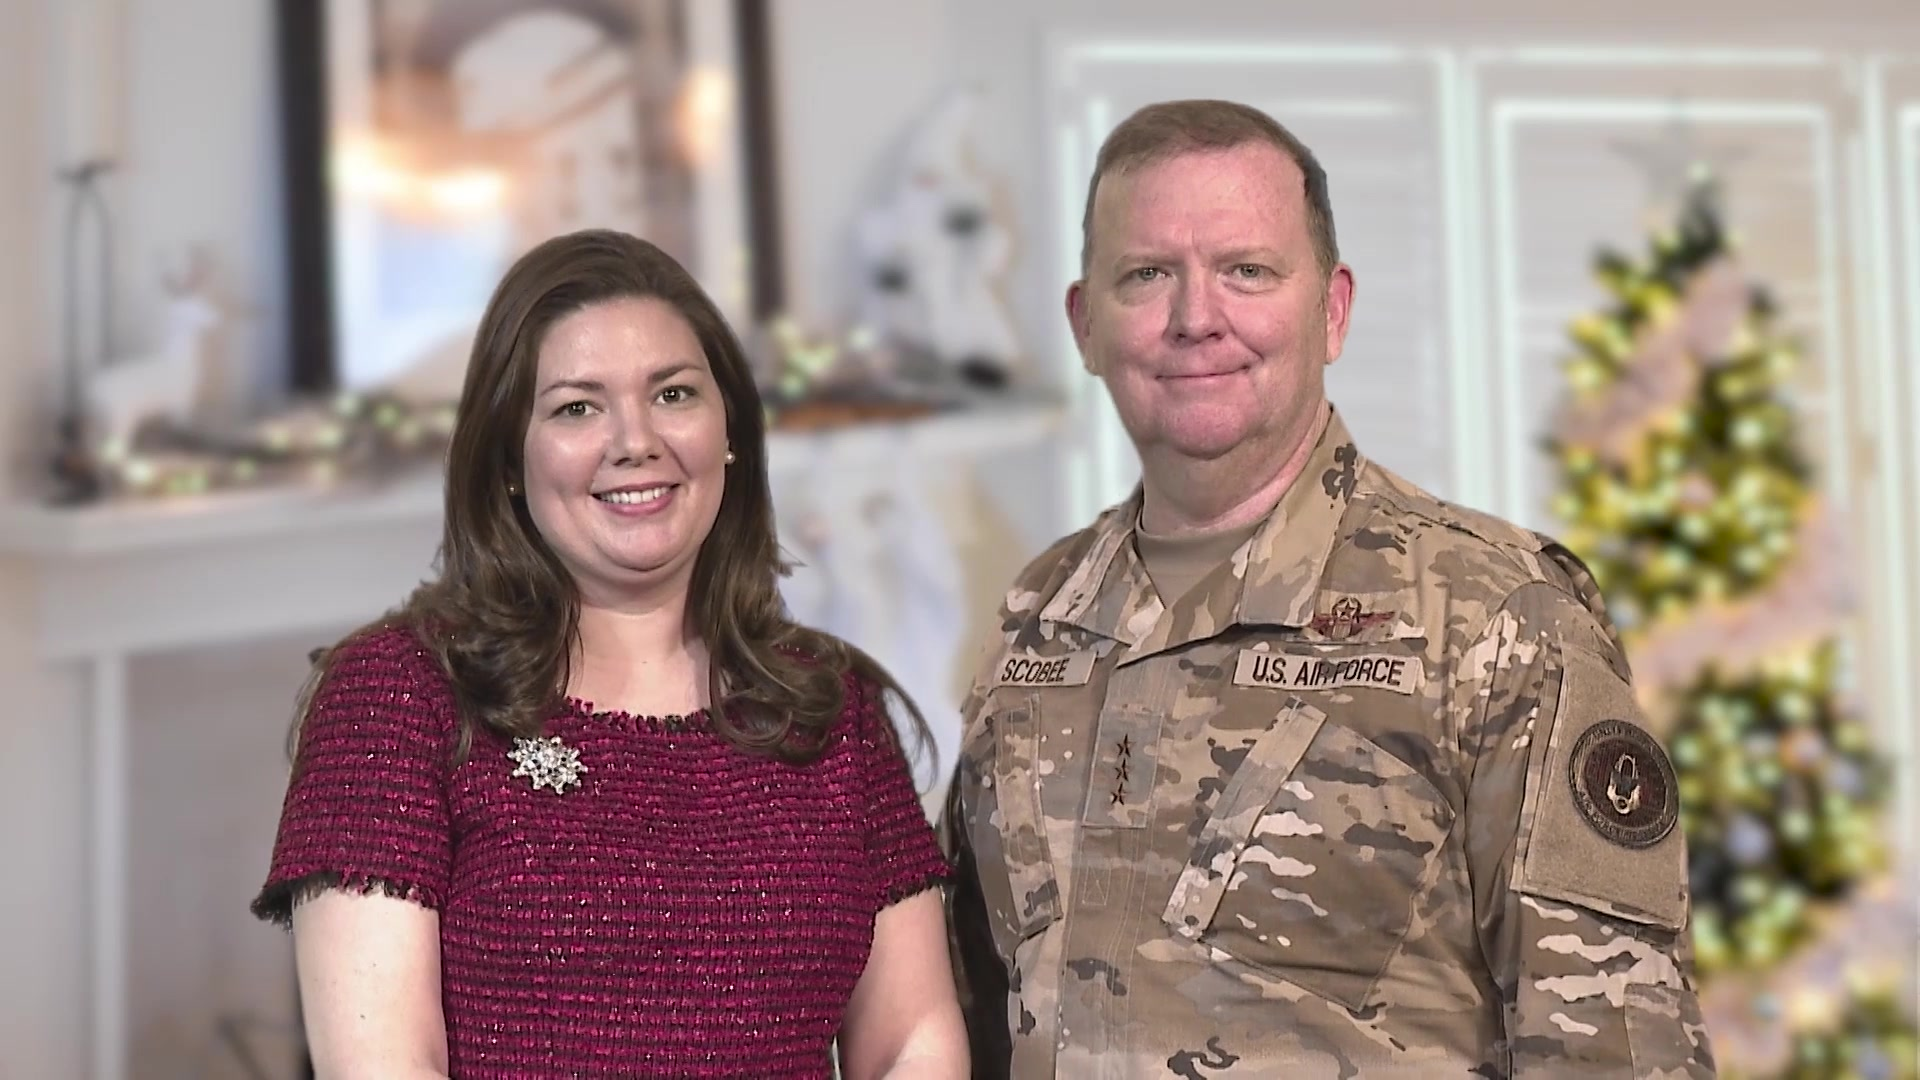 Lt. Gen. Richard Scobee, chief, Air Force Reserve and commander, Air Force Reserve Command, and his wife Janis send their warmest holiday greetings from their family to yours... Happy Holidays!